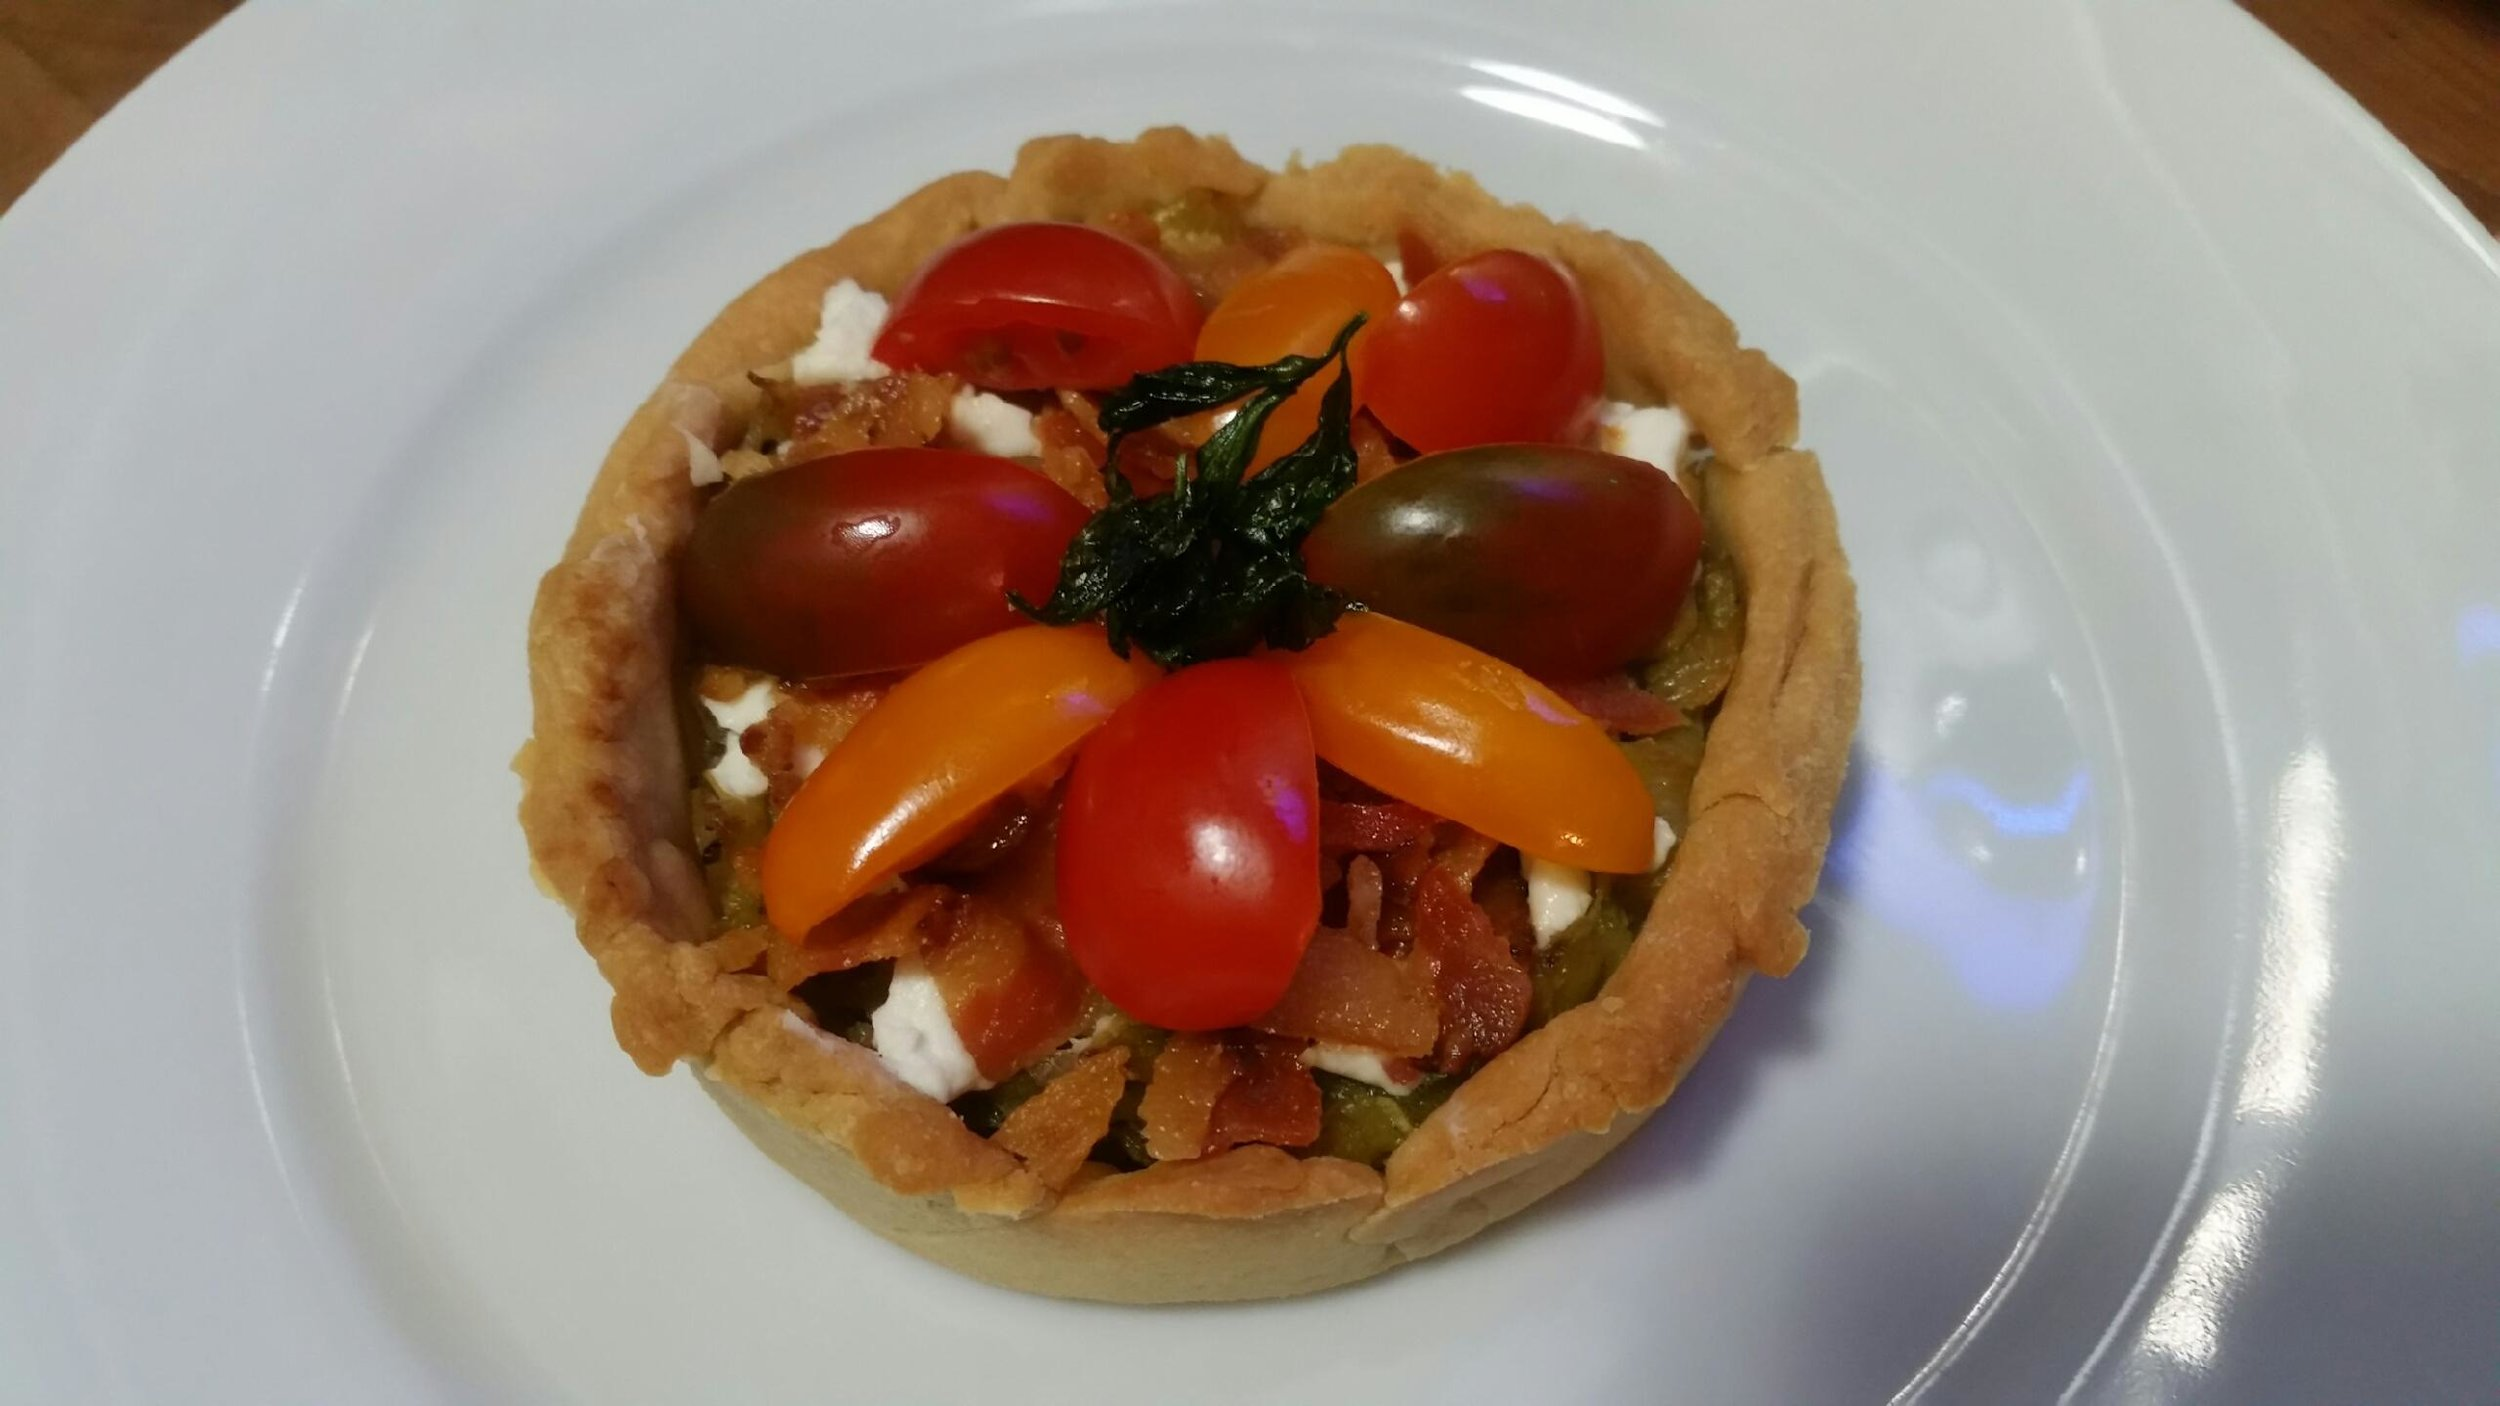 Leek, bacon, goat cheese and tomato  tartlet.